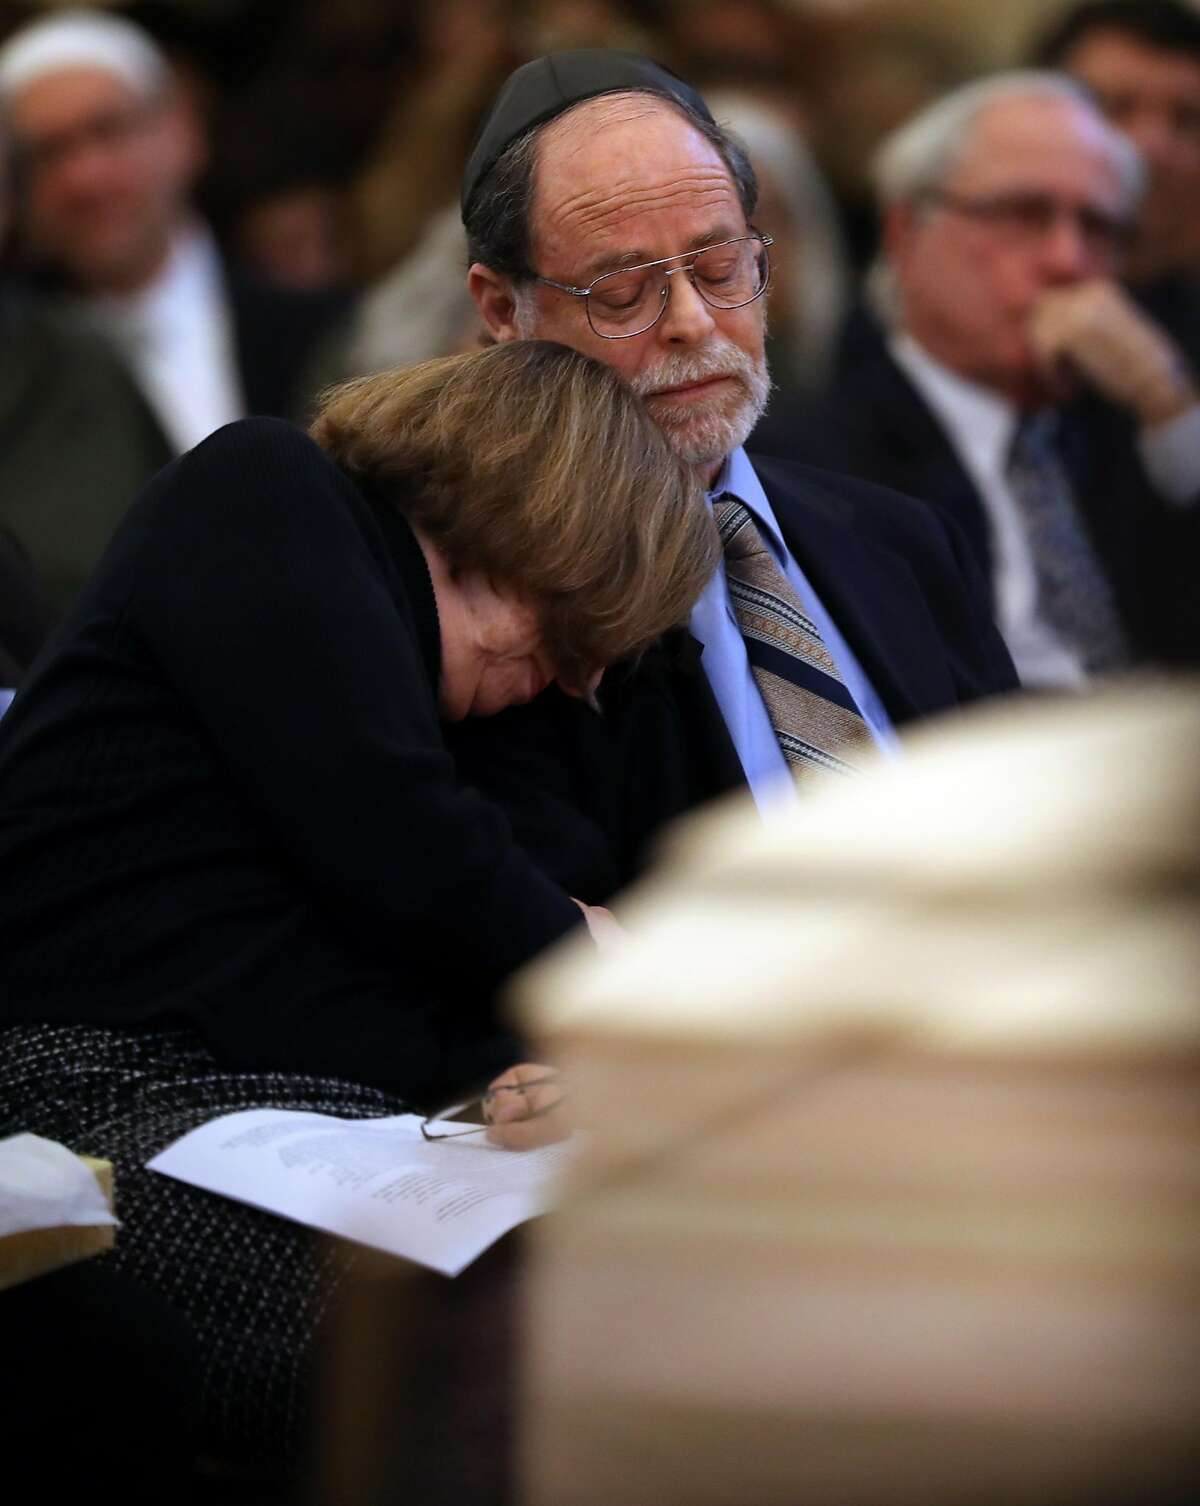 Ed Bernbaum comforts his wife, Diane, during the funeral for their son, Jonathan Bernbaum, a Ghost Ship warehouse fire victim, at Congregation Beth El in Berkeley, Calif., on Sunday, December 11, 2016.